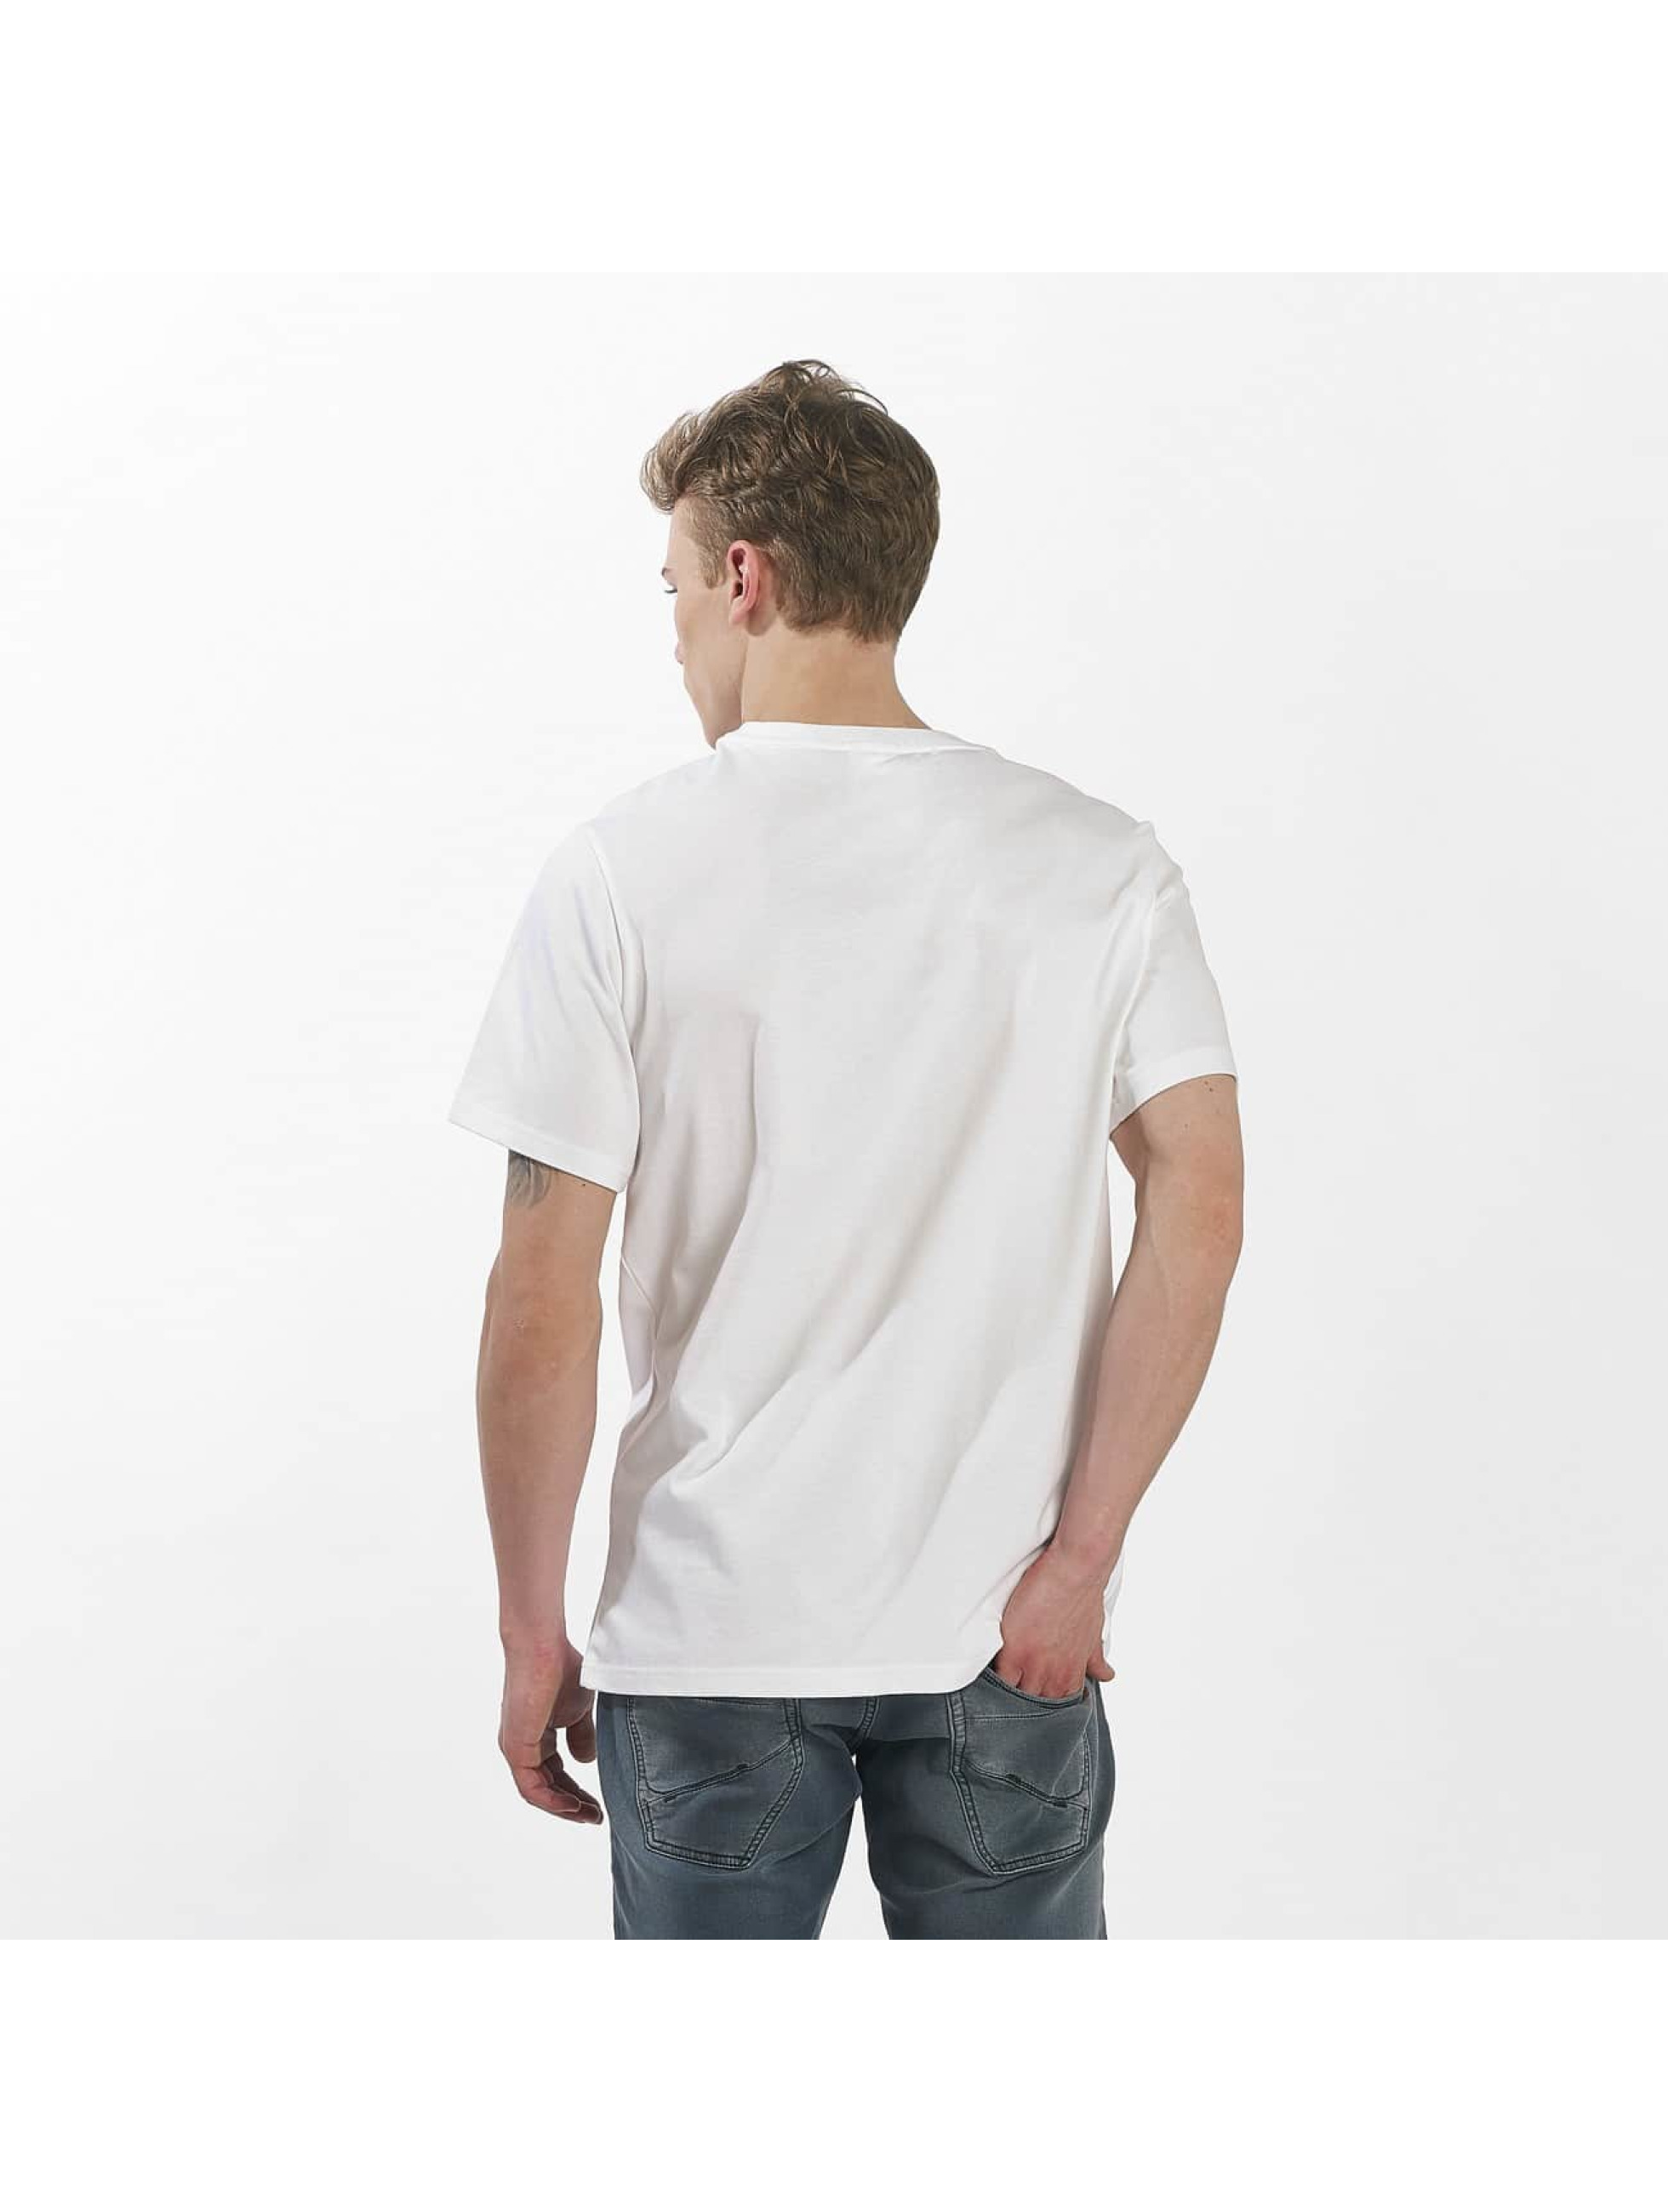 New Balance T-Shirt MT73581 white